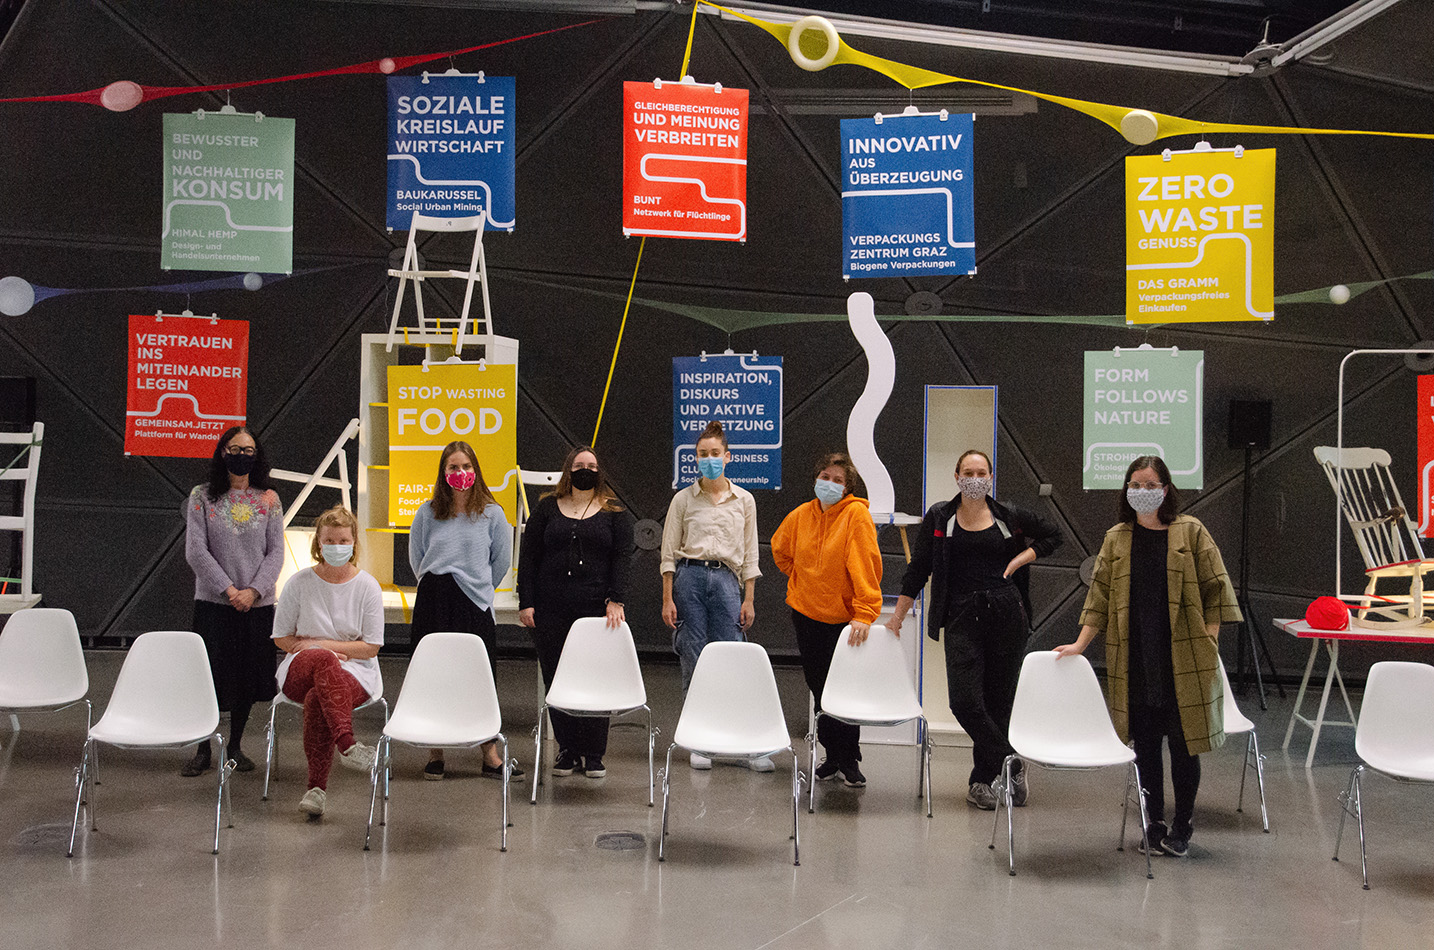 Exhibition designers from the FH made some future ideas for the modern art museum in Graz.